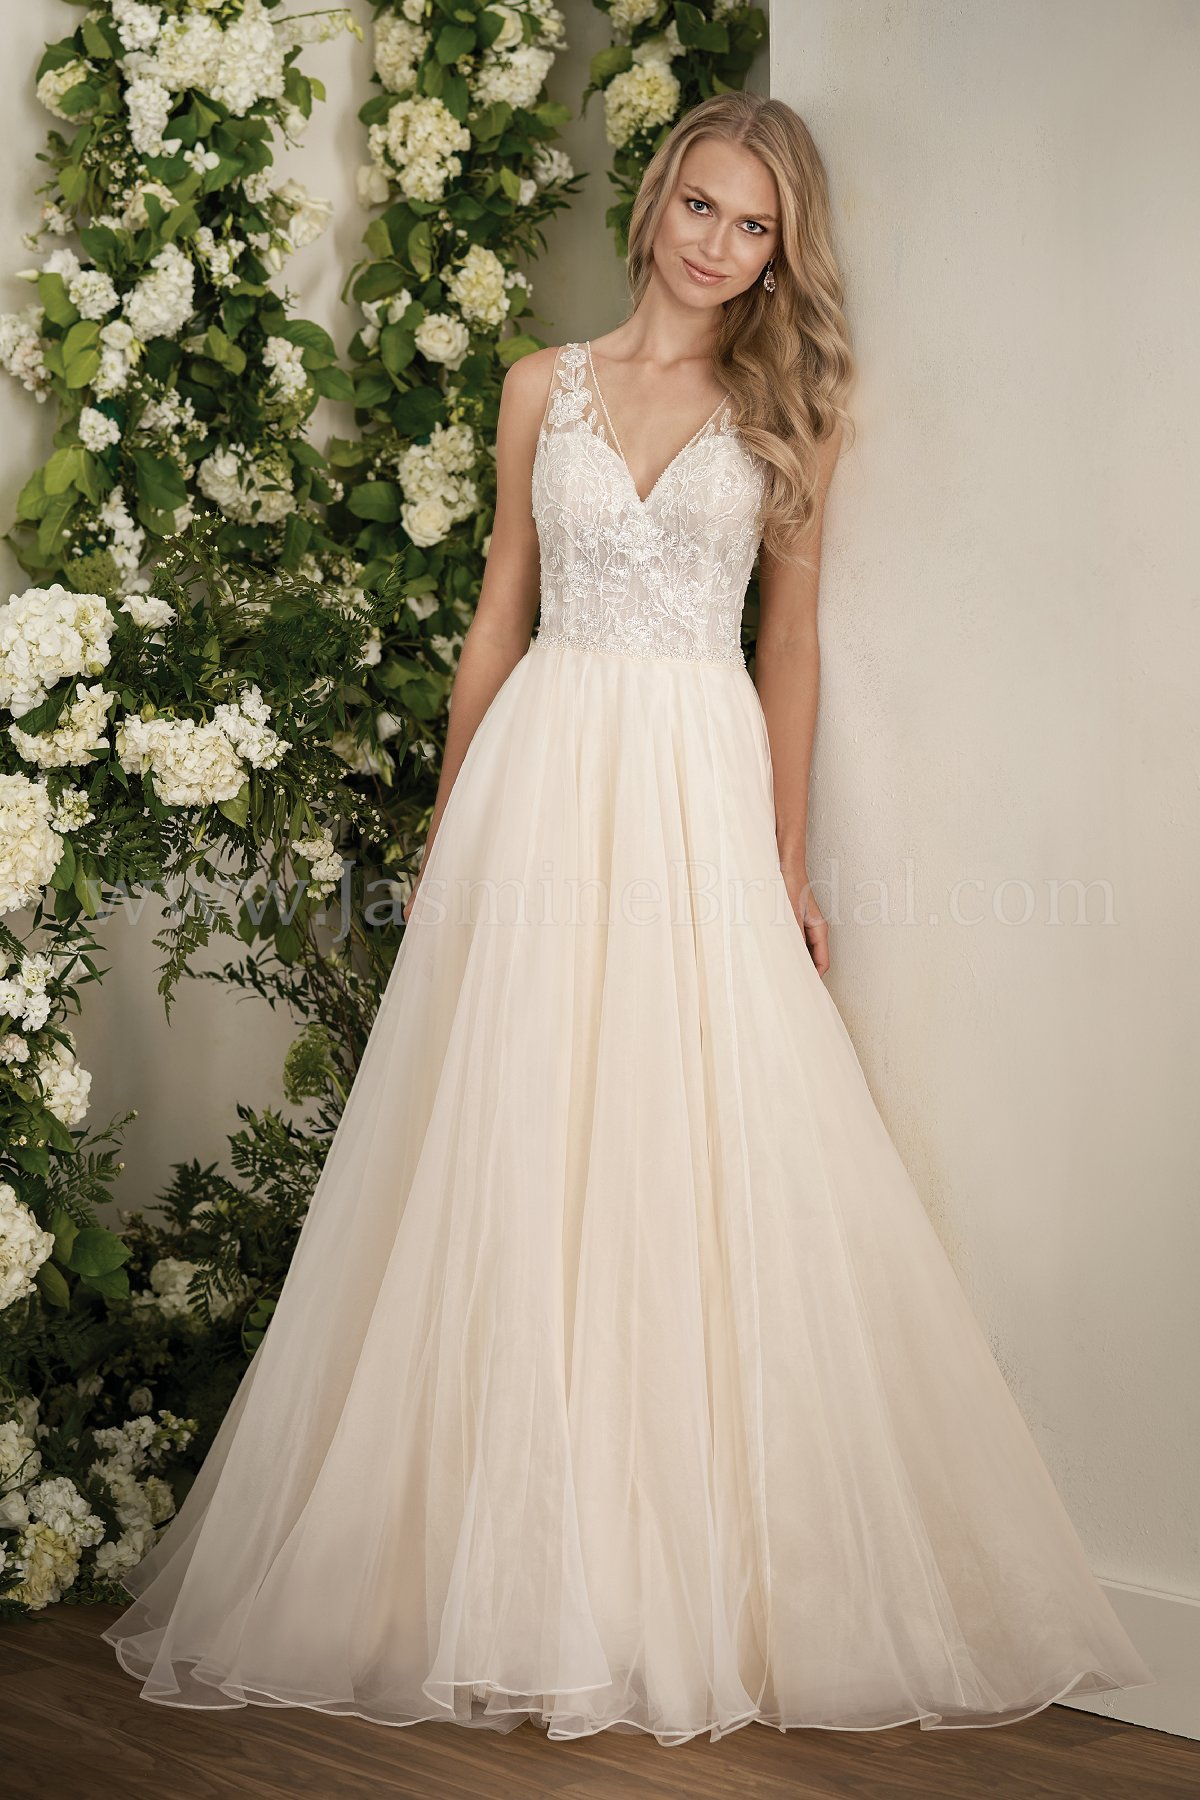 T202007 Illusion Bodice , V-neck Sequin Lace Ball Gown Wedding Dress